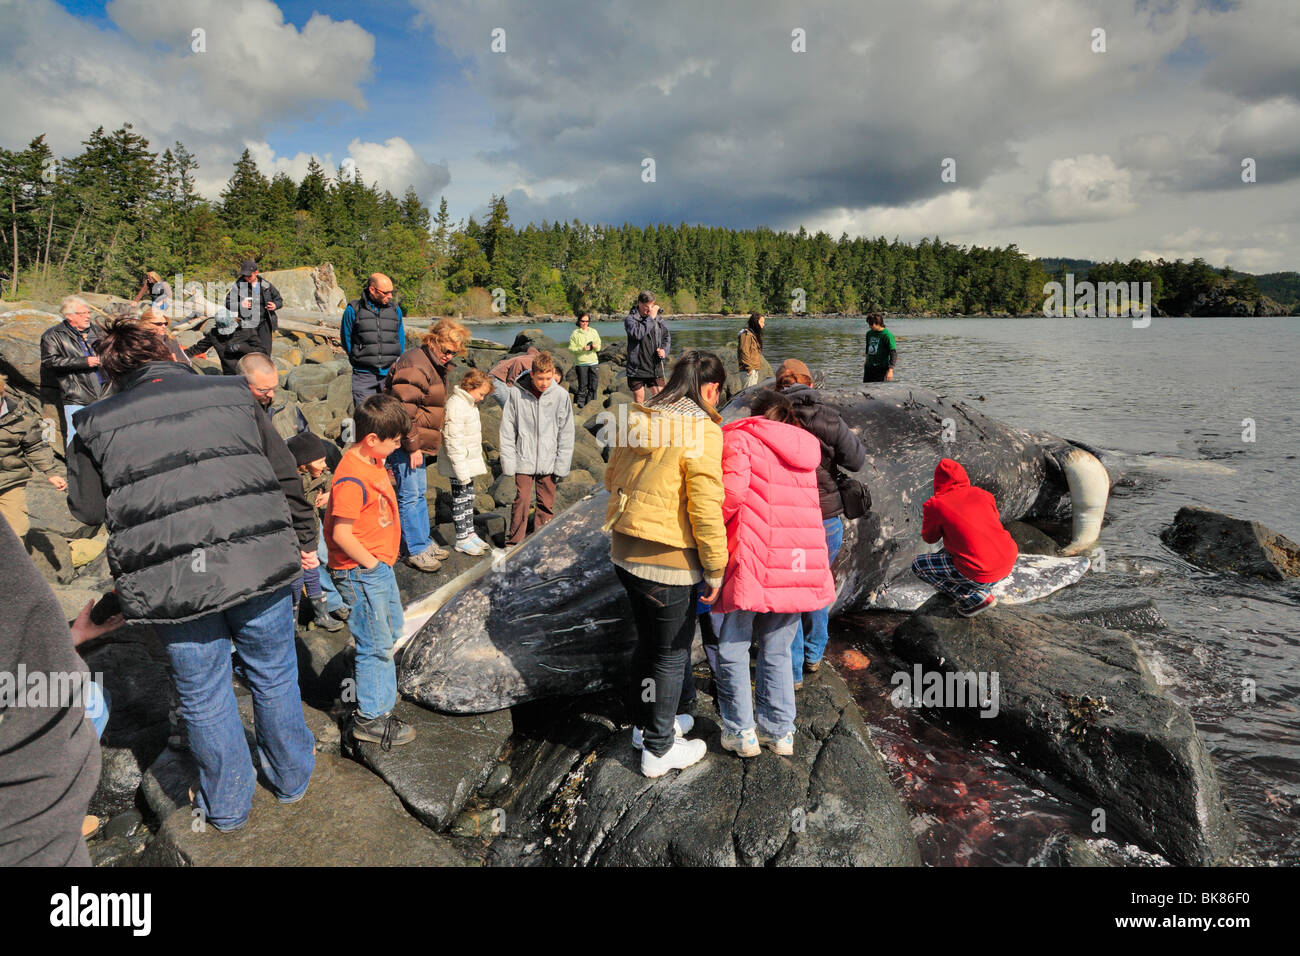 Onlookers viewing dead young gray whale on beach-East Sooke Park, Metchosin, British Columbia, Canada. - Stock Image